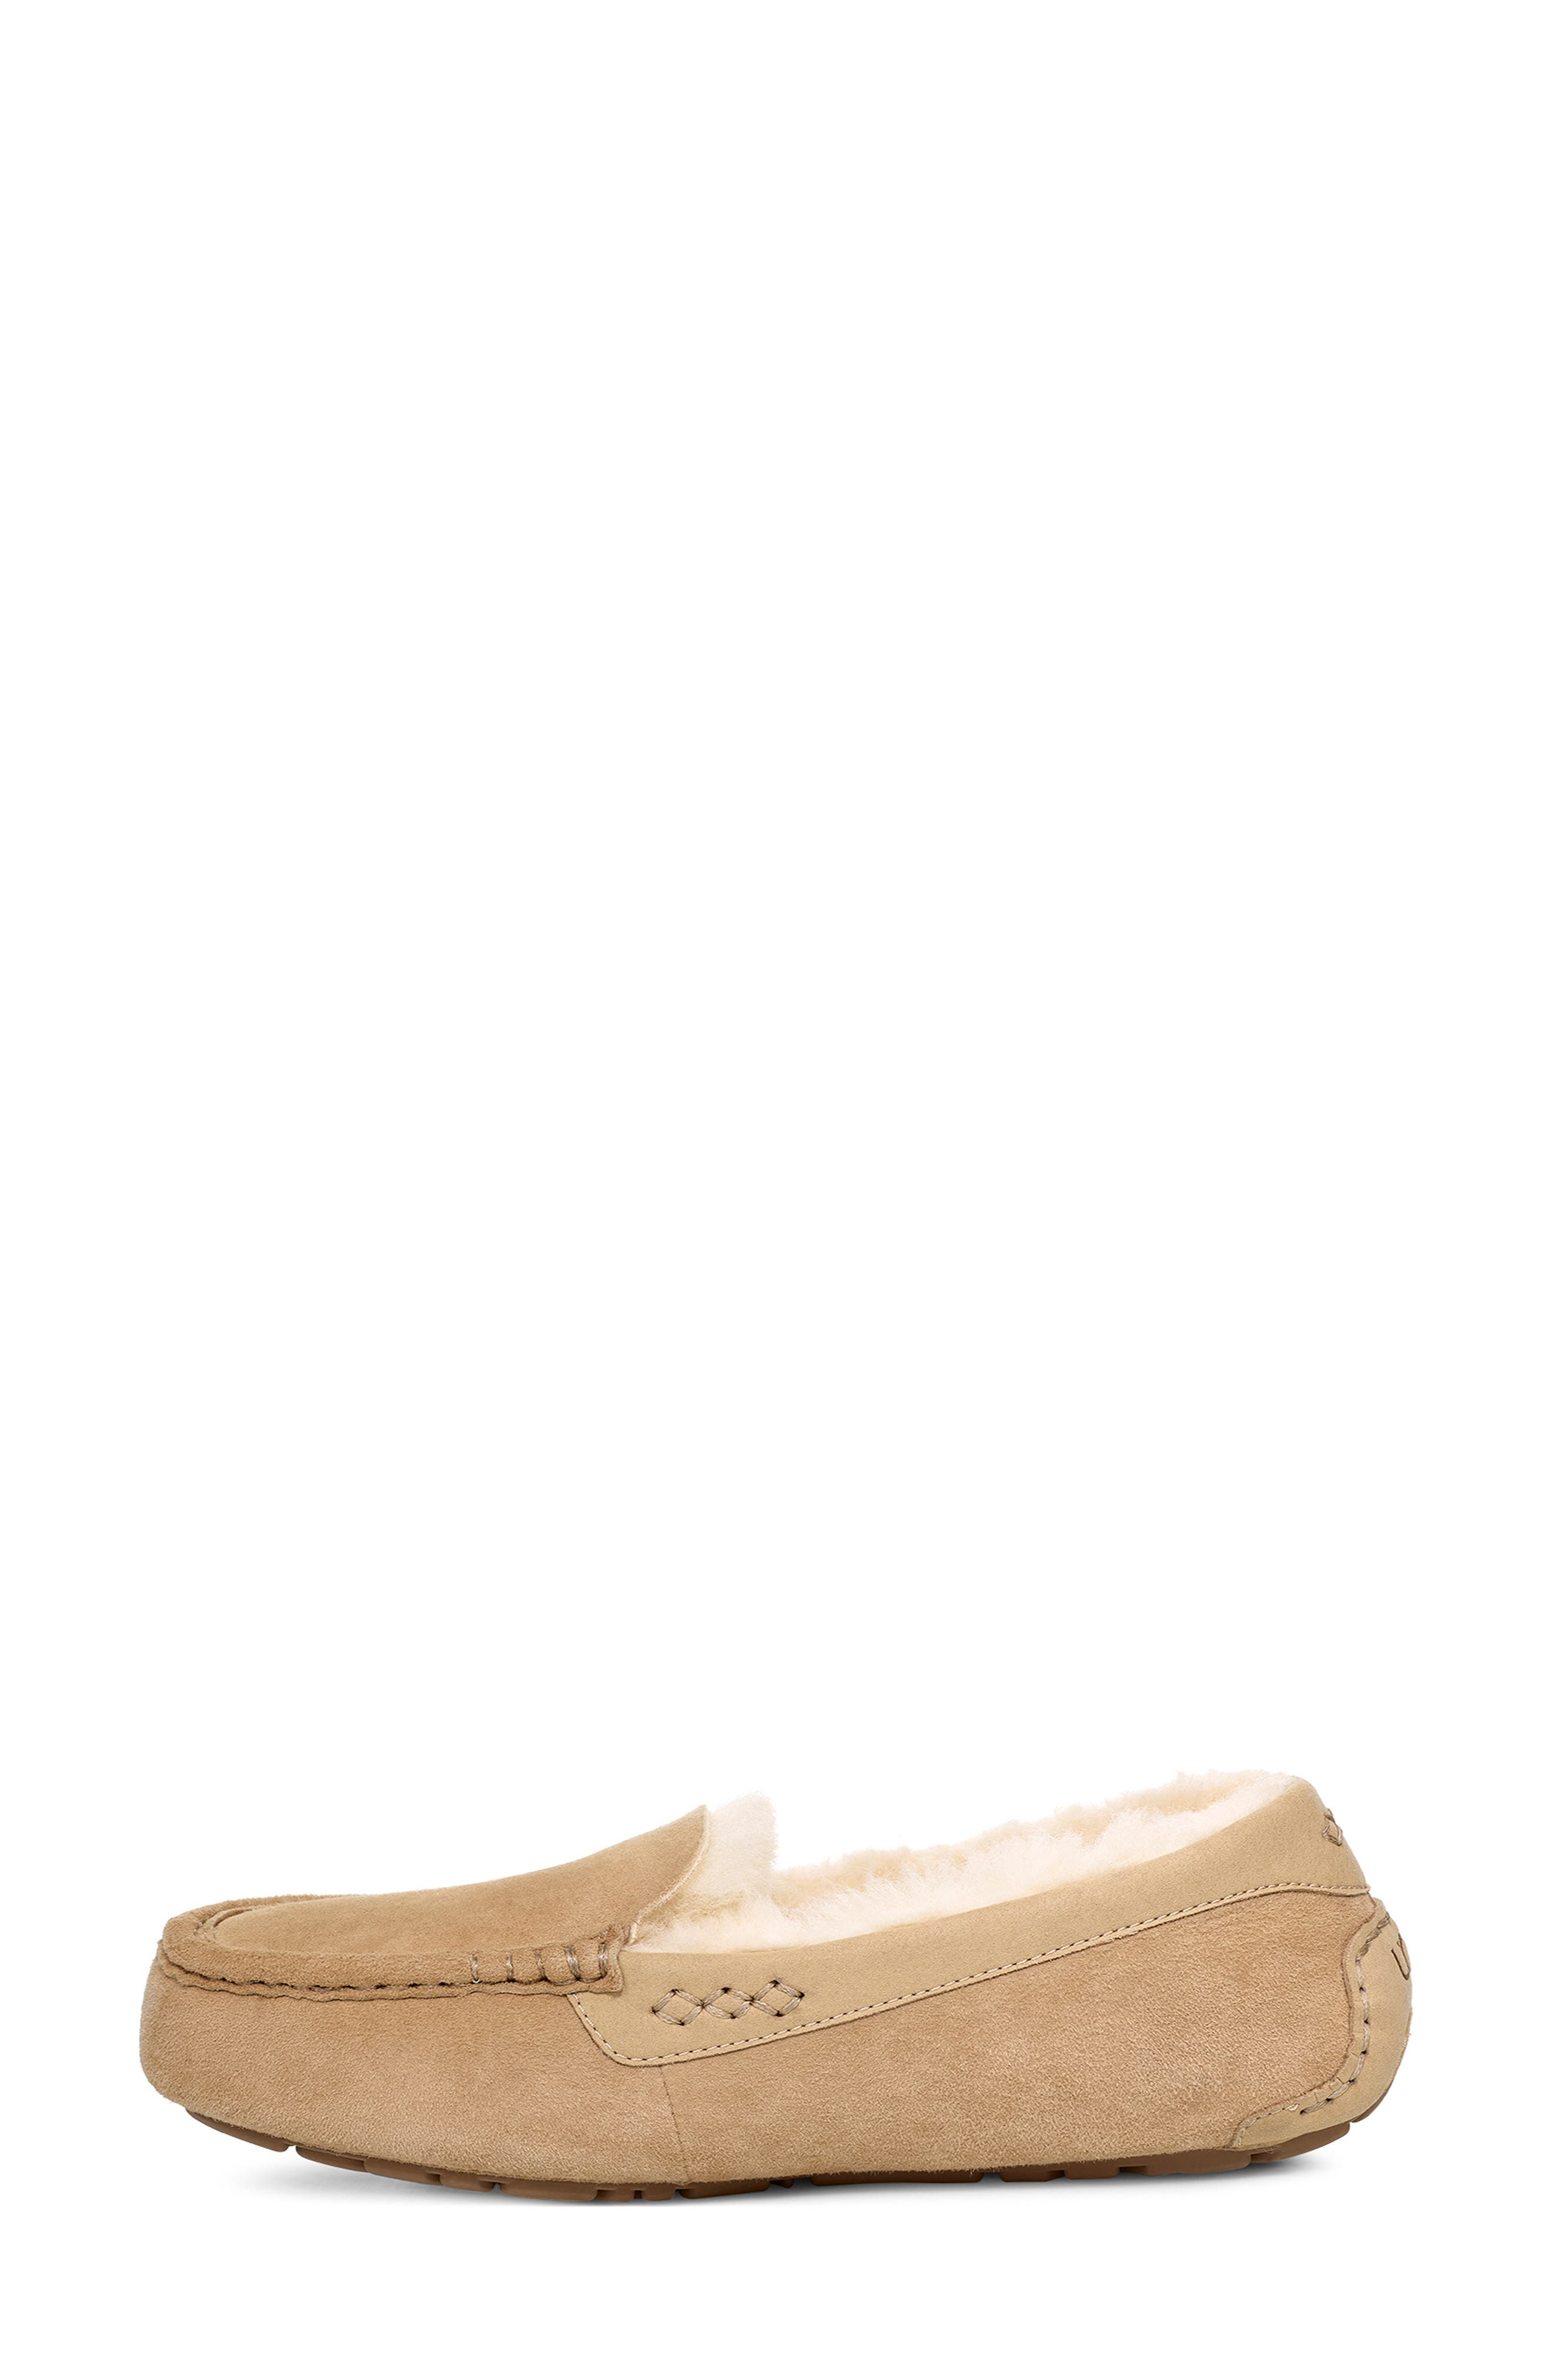 UGG<SUP>®</SUP>, Ansley 40:40:40 Anniversary Slipper, Alternate thumbnail 3, color, SAND